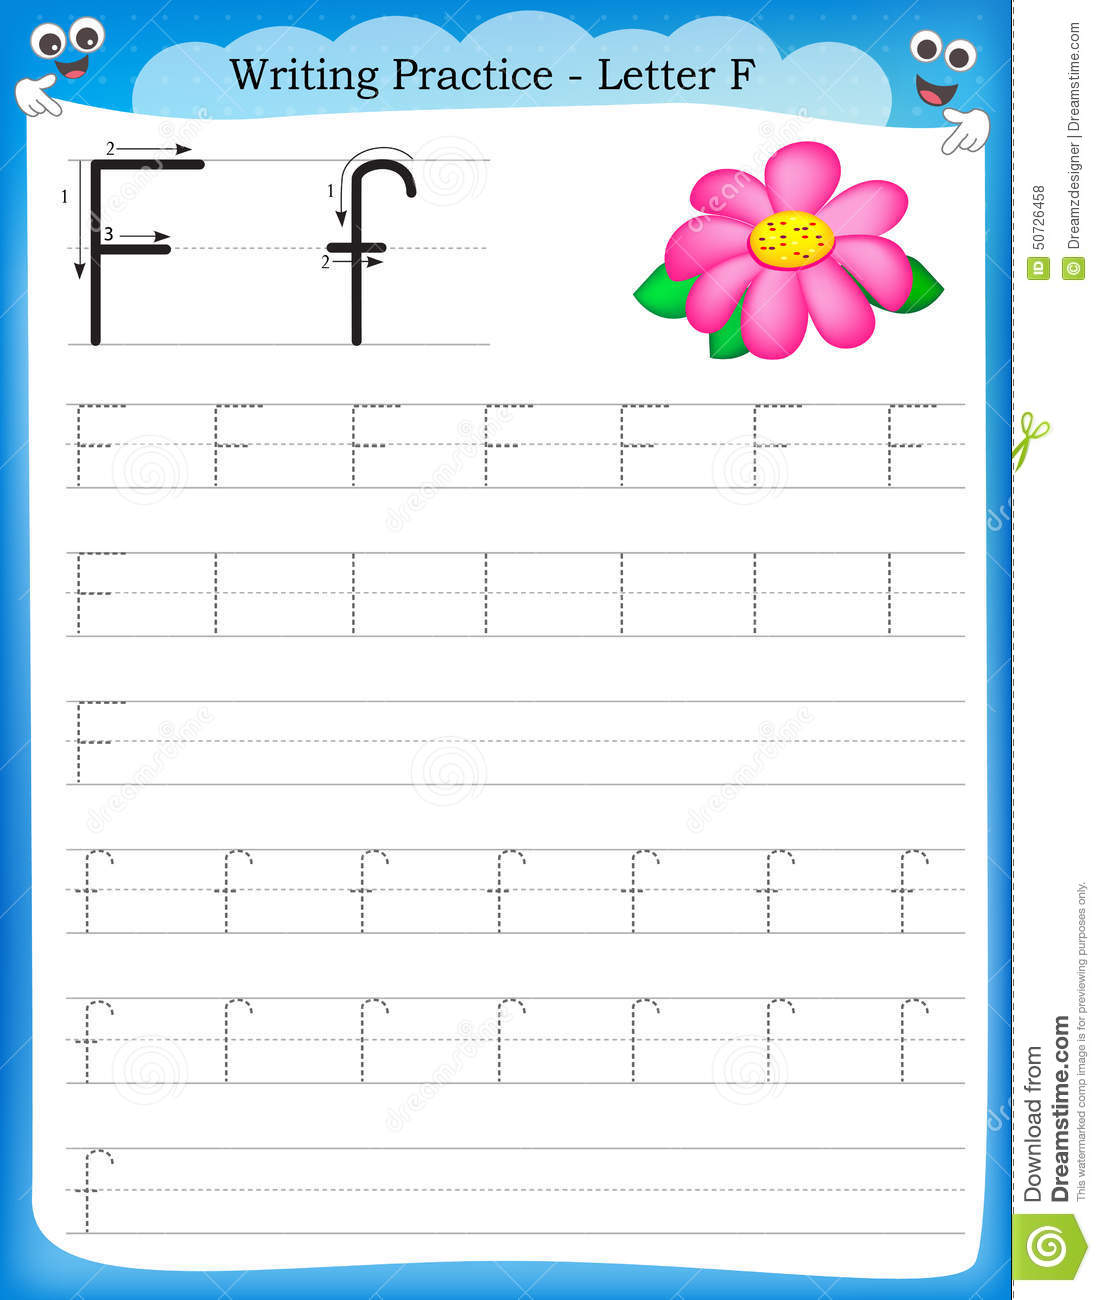 practice letter F printable worksheet for preschool / kindergarten ...